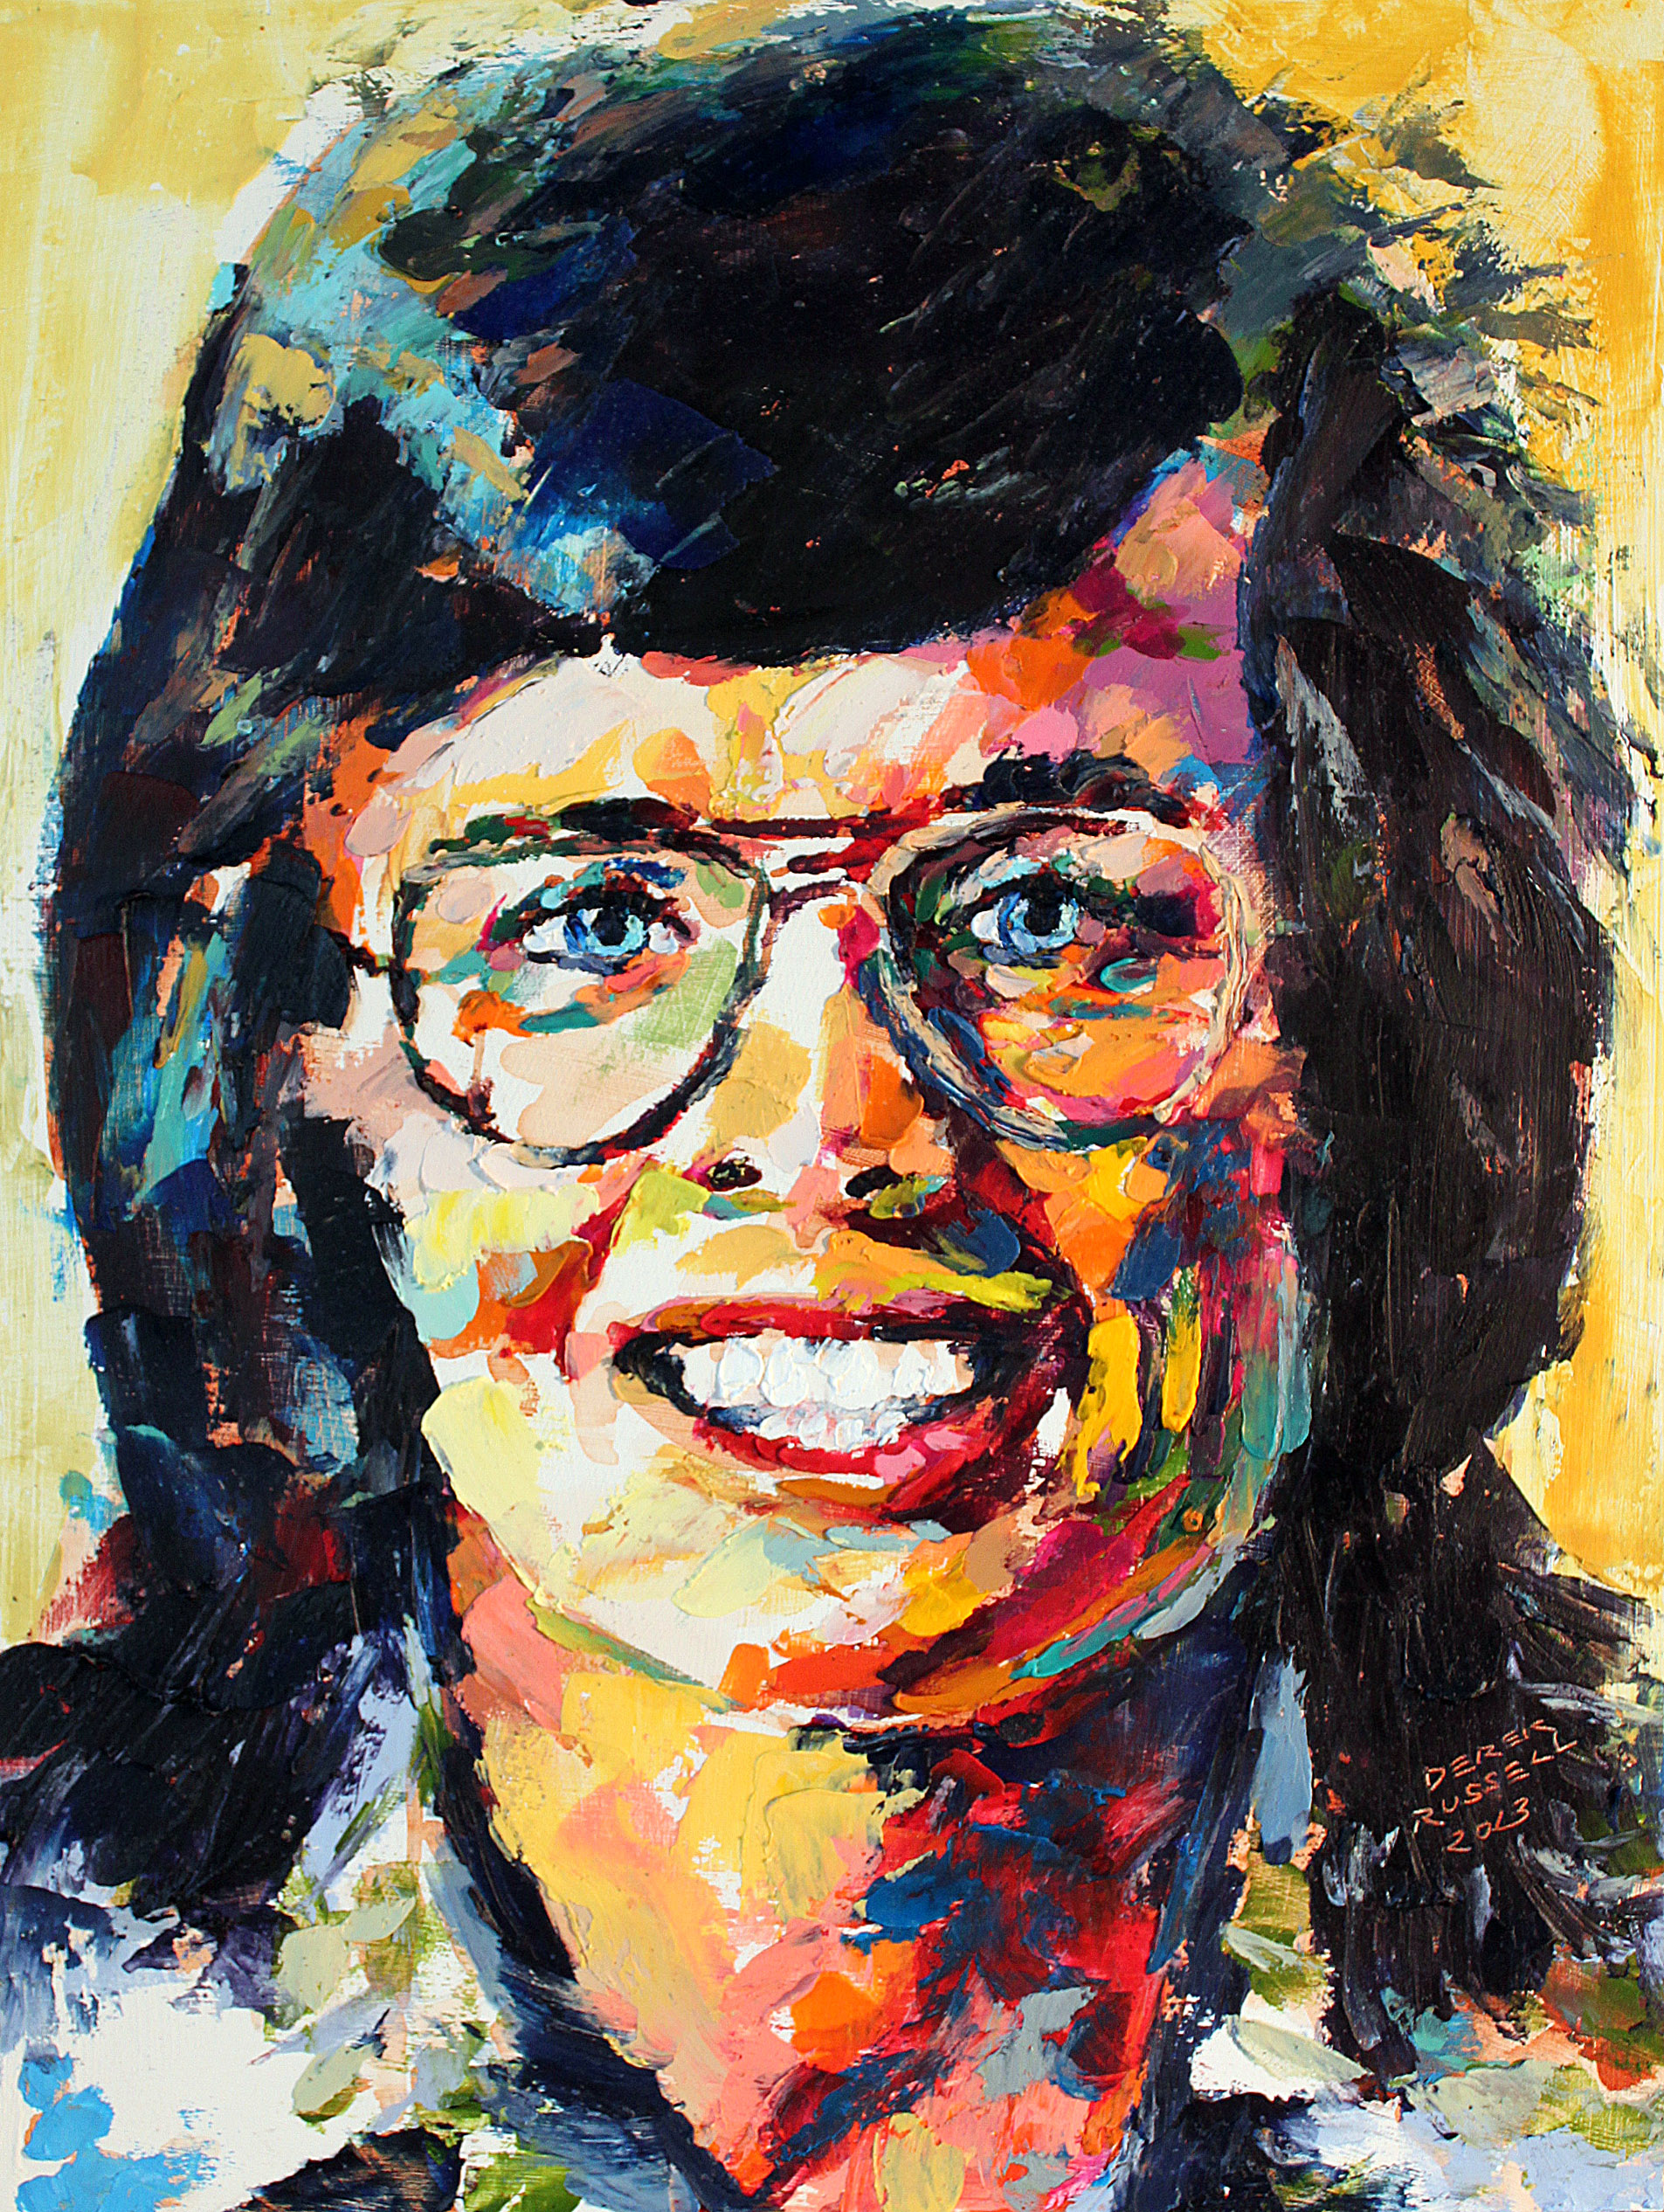 Billie Jean King Original Portrait Pop Art Painting by Derek Russell